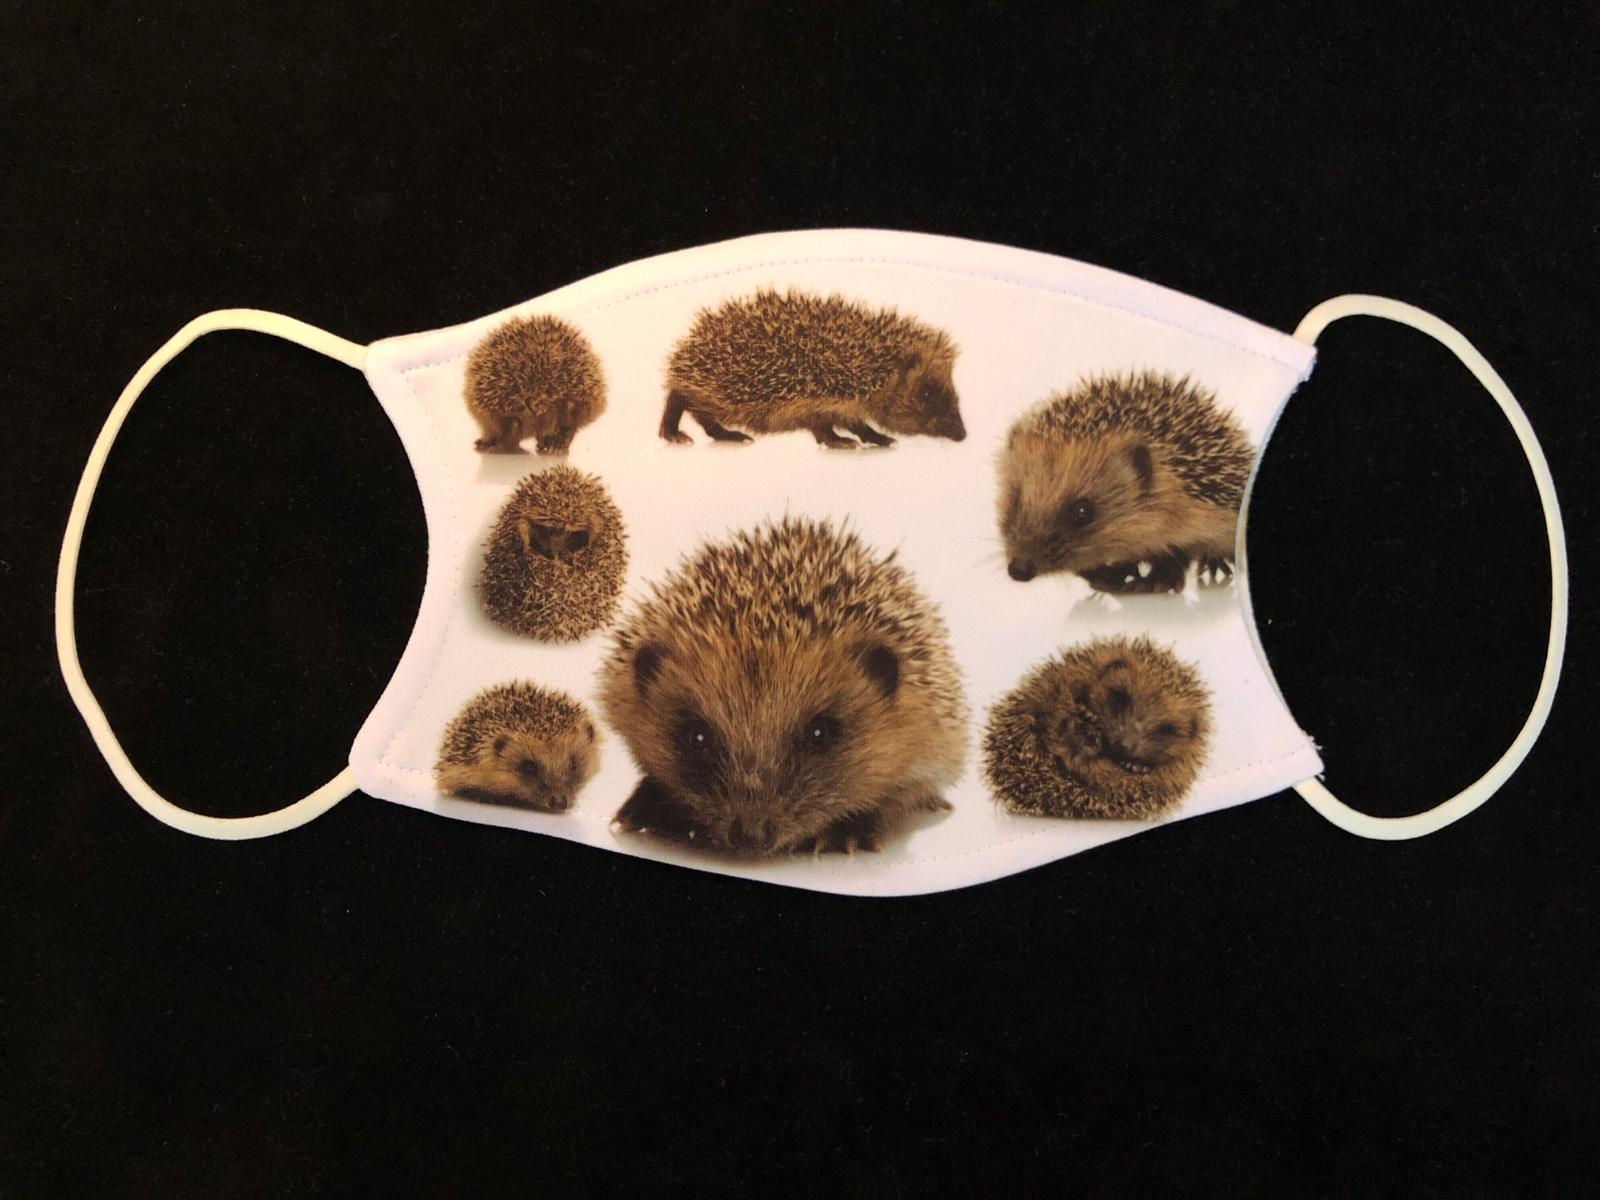 'Hedgehogs'